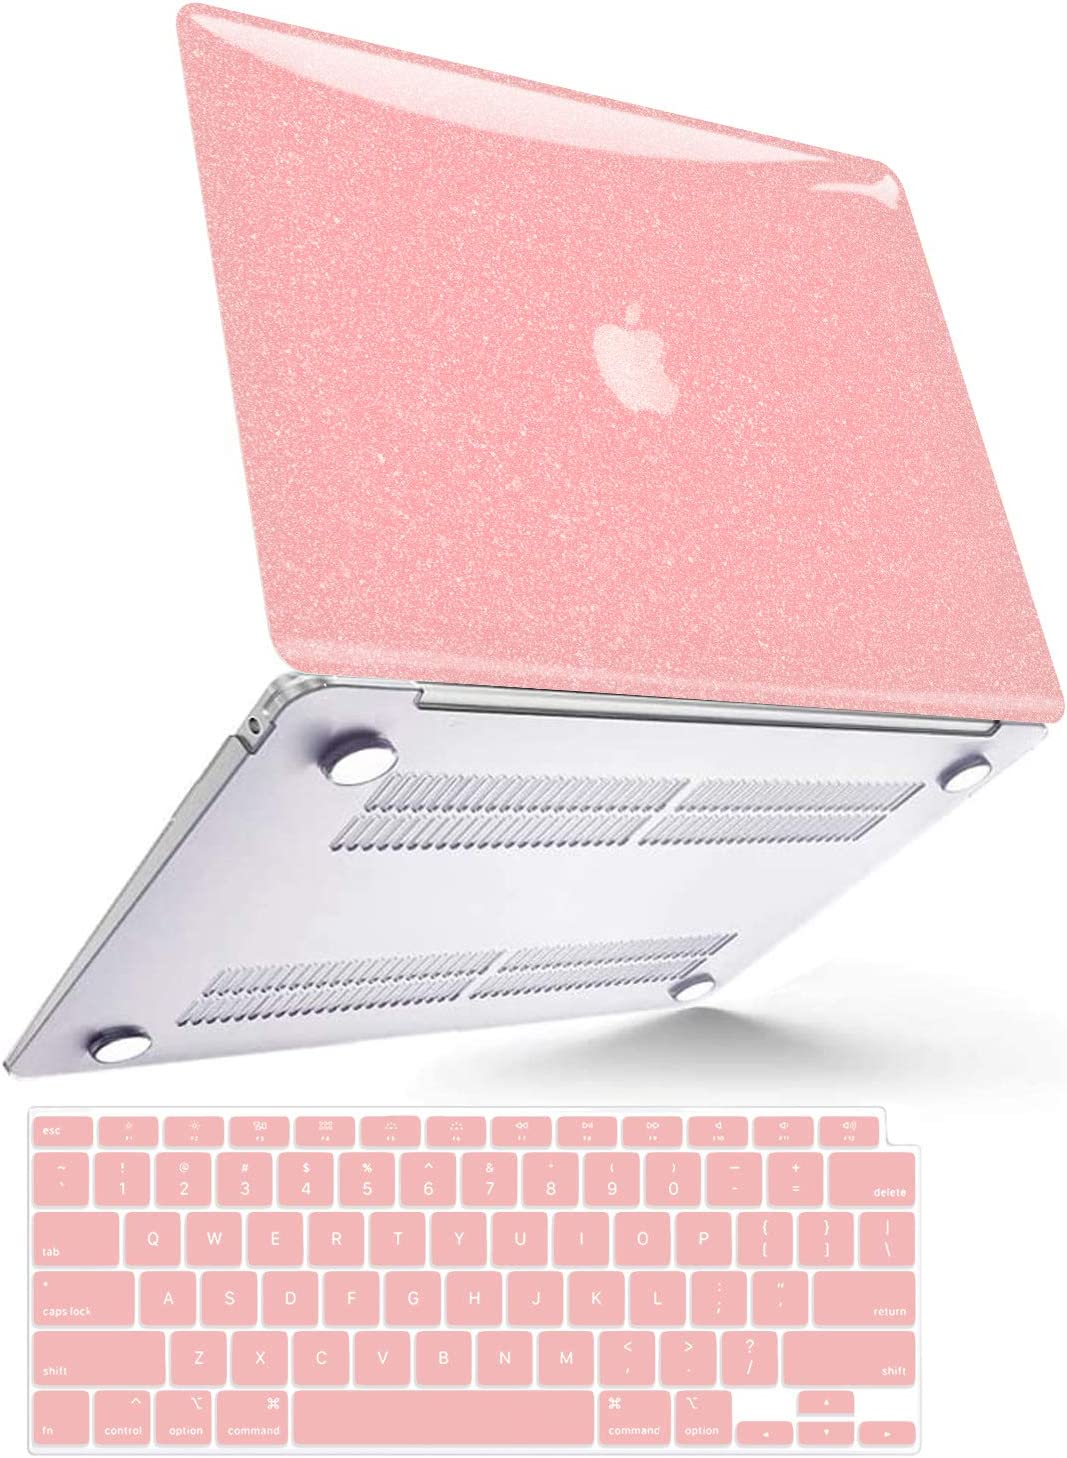 B BELK MacBook Air 2020 M1 Case 2019 2018, MacBook Air 13 inch Case A2337 A2179 A1932 with Touch ID, Anti-Fingerprint Smooth Shiny Laptop Plastic Hard Shell Case + 2 Keyboard Covers, Pink